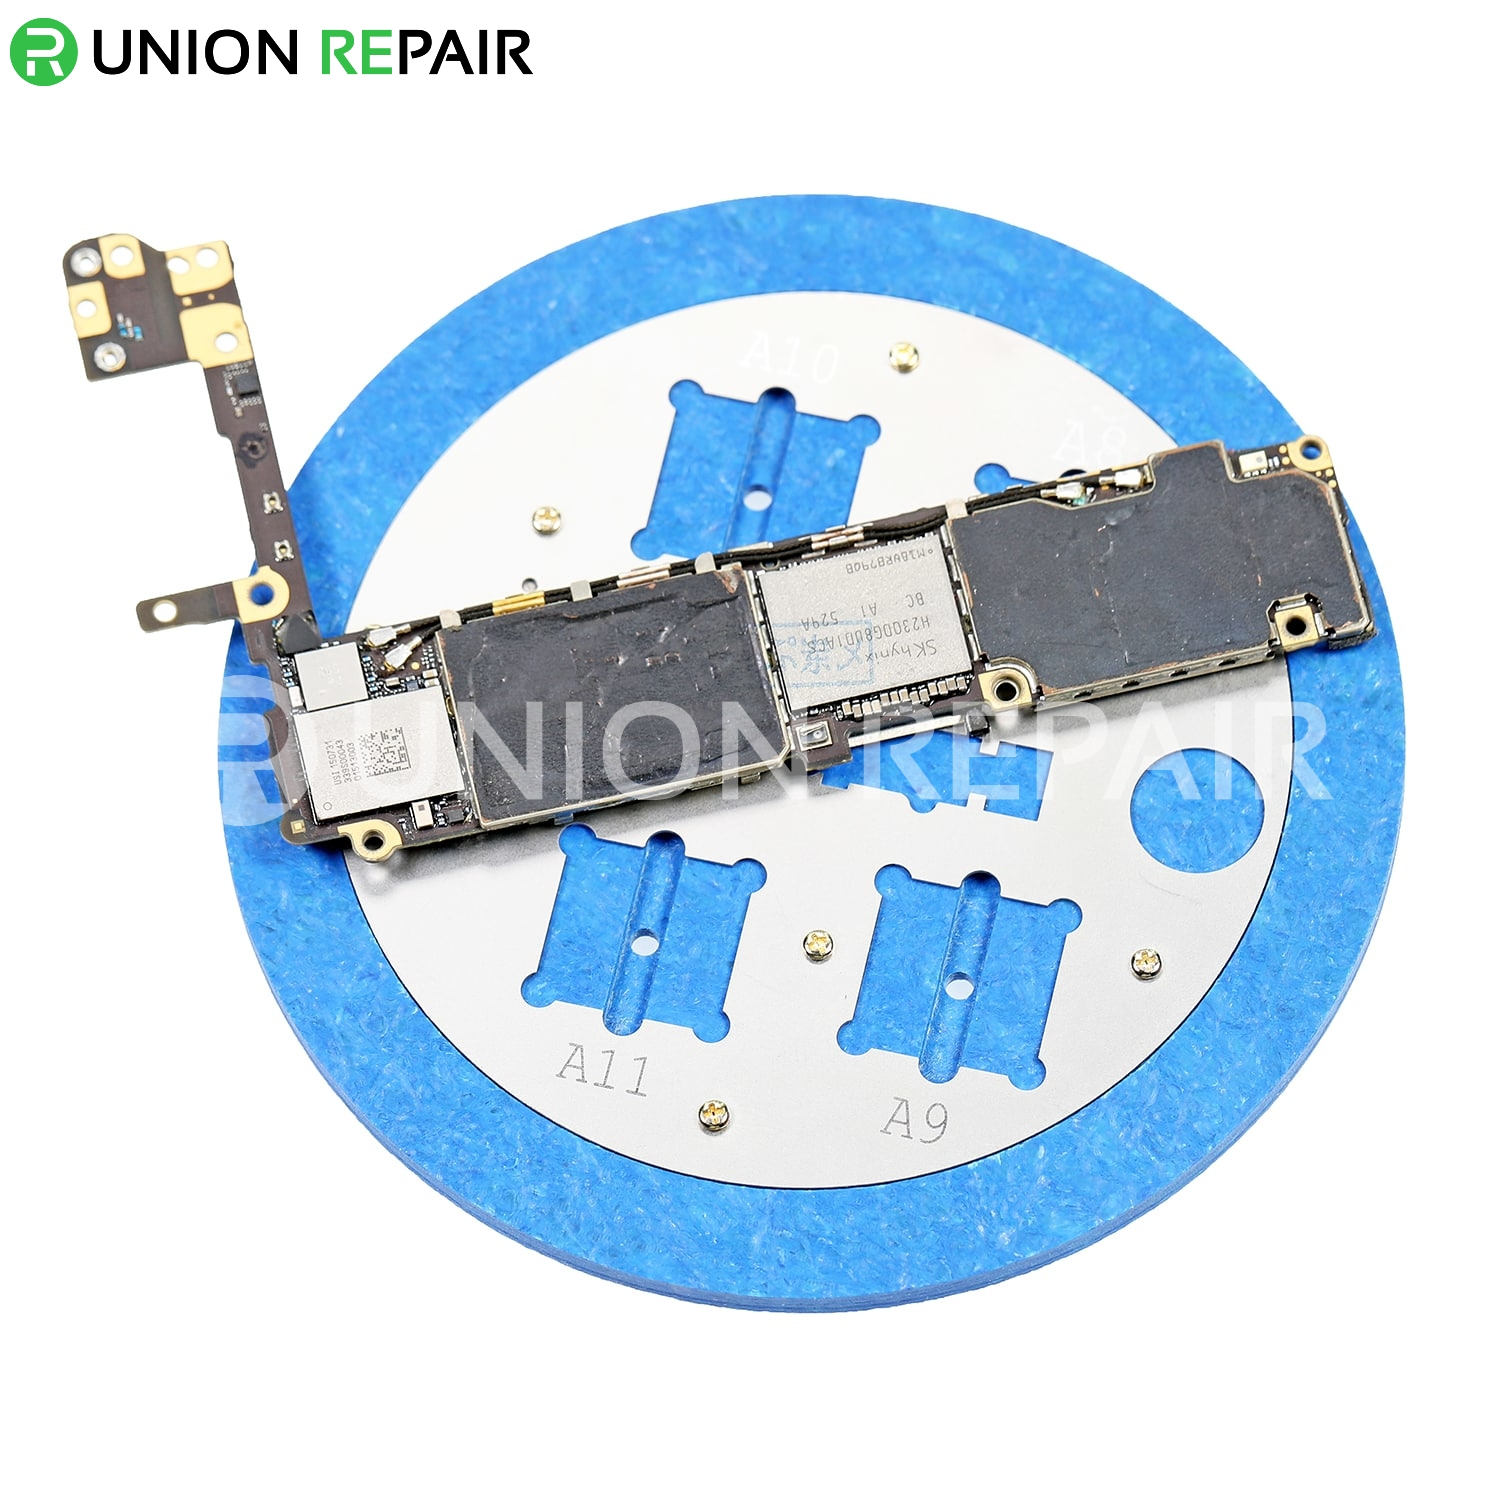 Microscopes Remove Base with Fingerprint Restoration for iPhone A8 A9 A10 A11